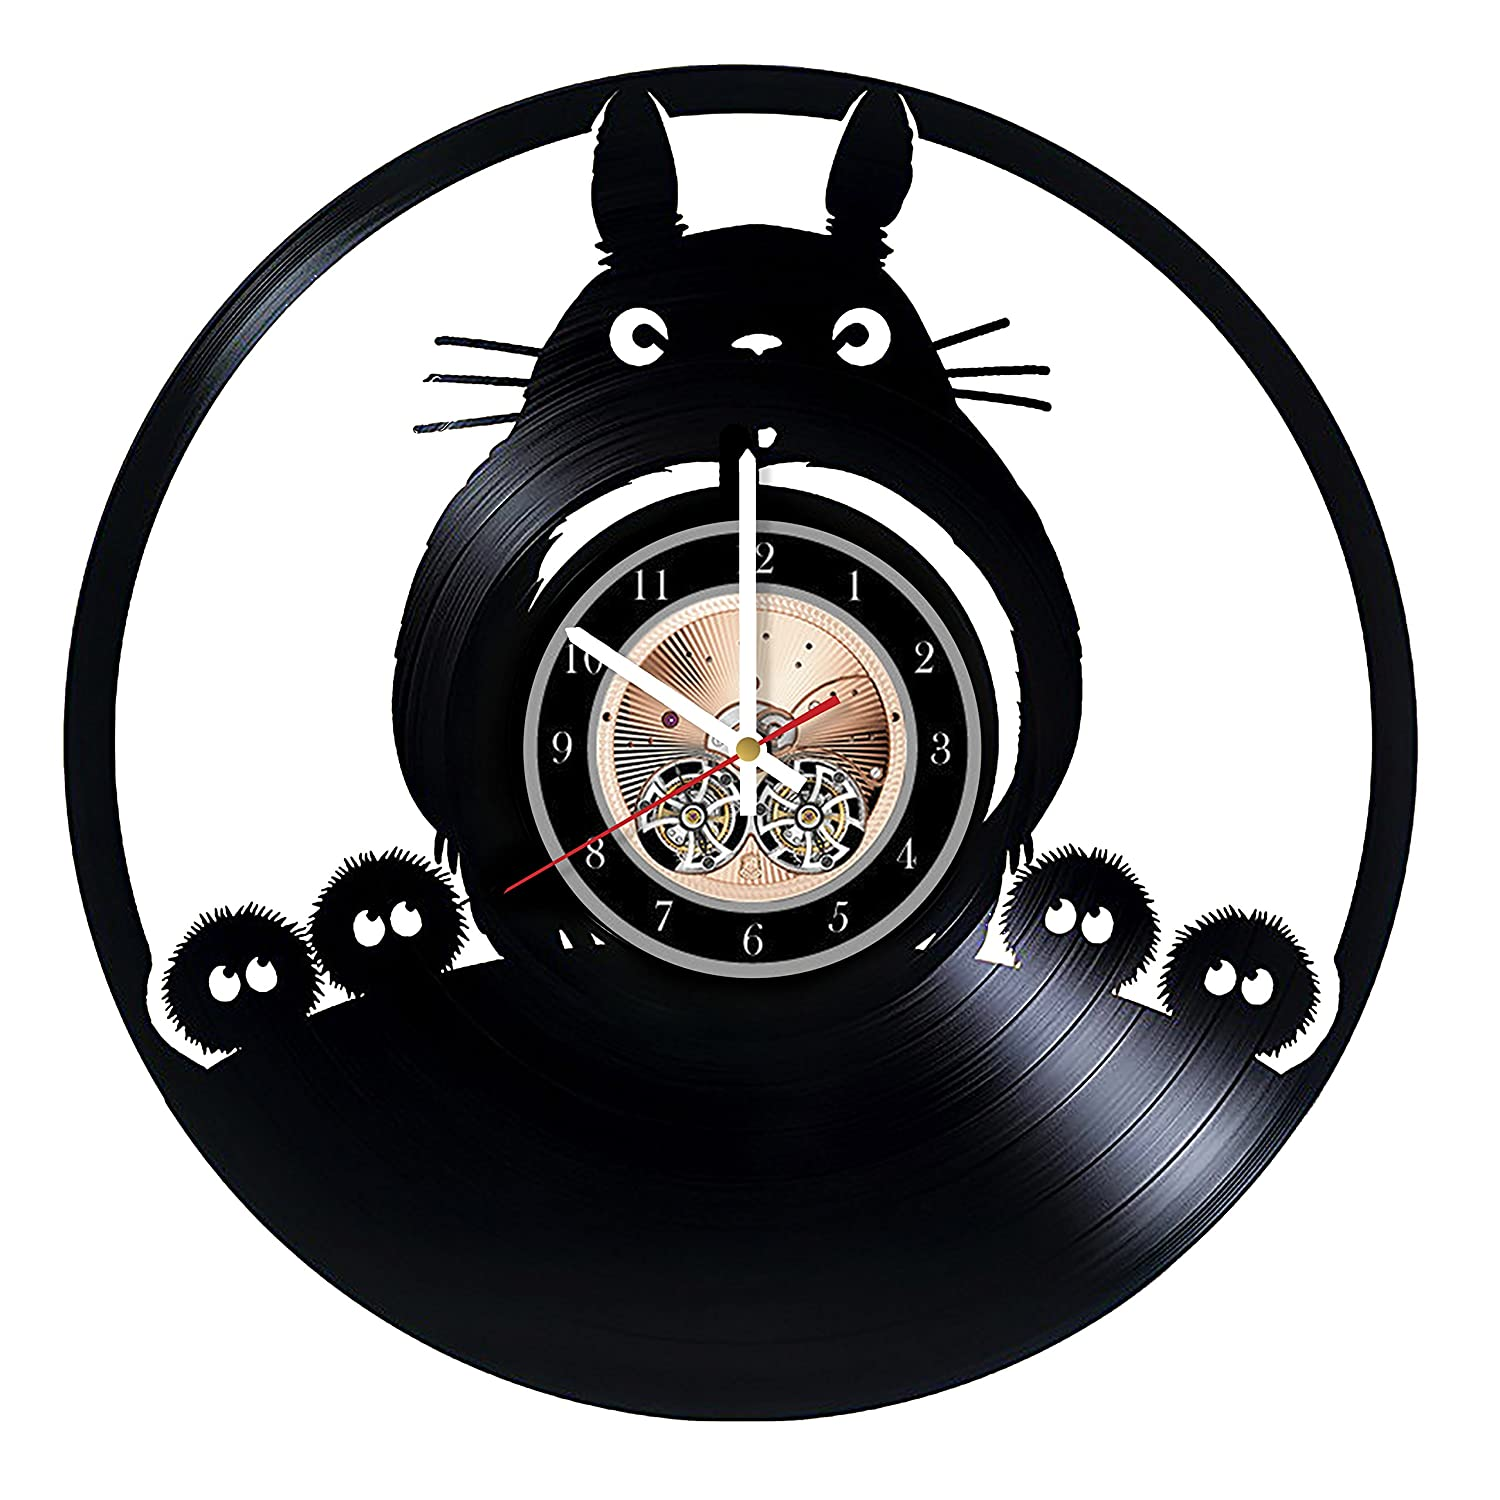 My Neighbor Totoro Animated Film HANDMADE Vinyl Record Wall Clock - Get unique bedroom or living room wall decor - Gift ideas for him and her